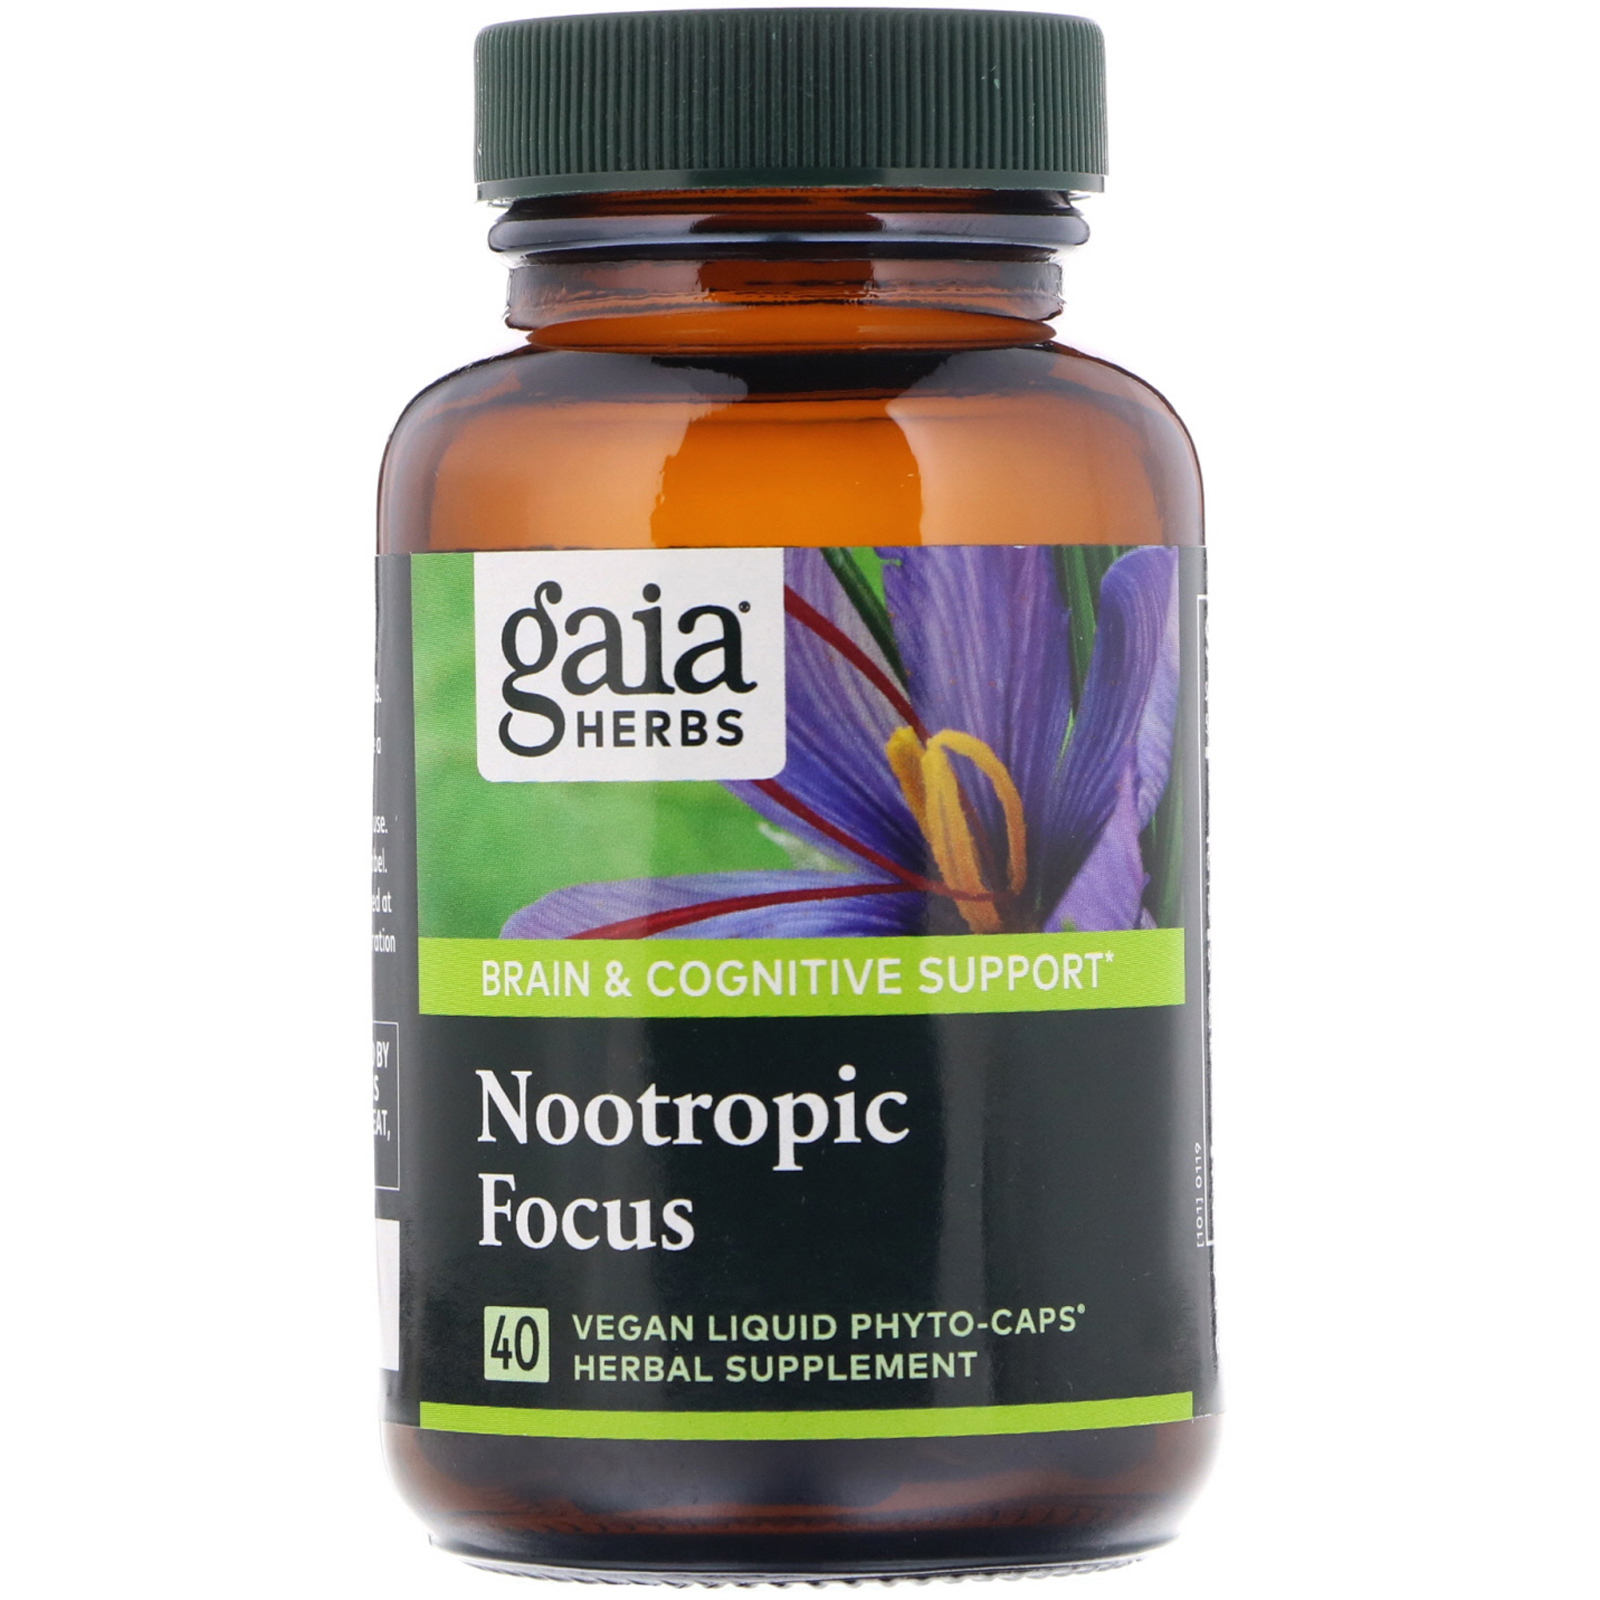 Gaia Herbs, Nootropic Focus, 40 Vegan Liquid Phyto-Caps